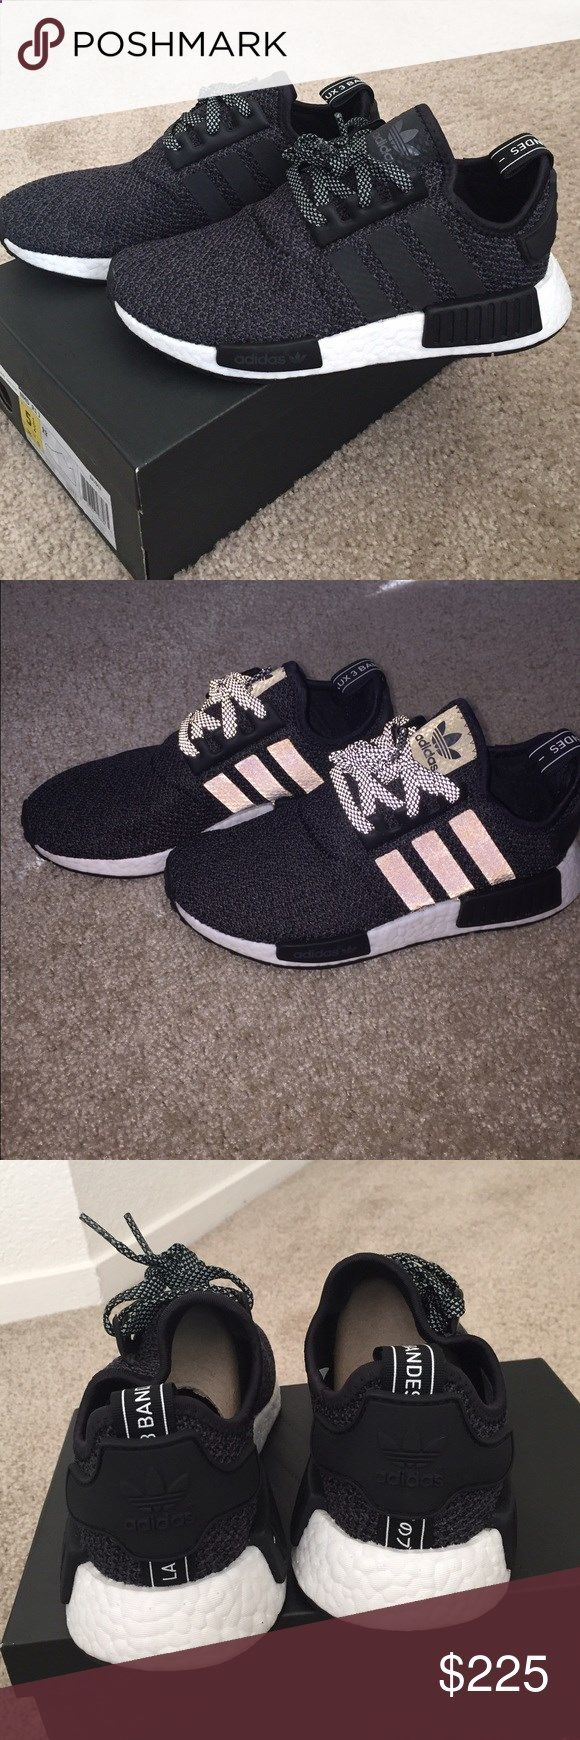 Brand new adidas NMD R1 size 5.5y (womens 7) Brand new in box, 100% authentic adidas NMD in kids 5.5y which is equivalent to a womens 7. These are the champ exclusives with 3M laces and stripes. Color is black and second picture is taken with flash Adidas Shoes Sneakers